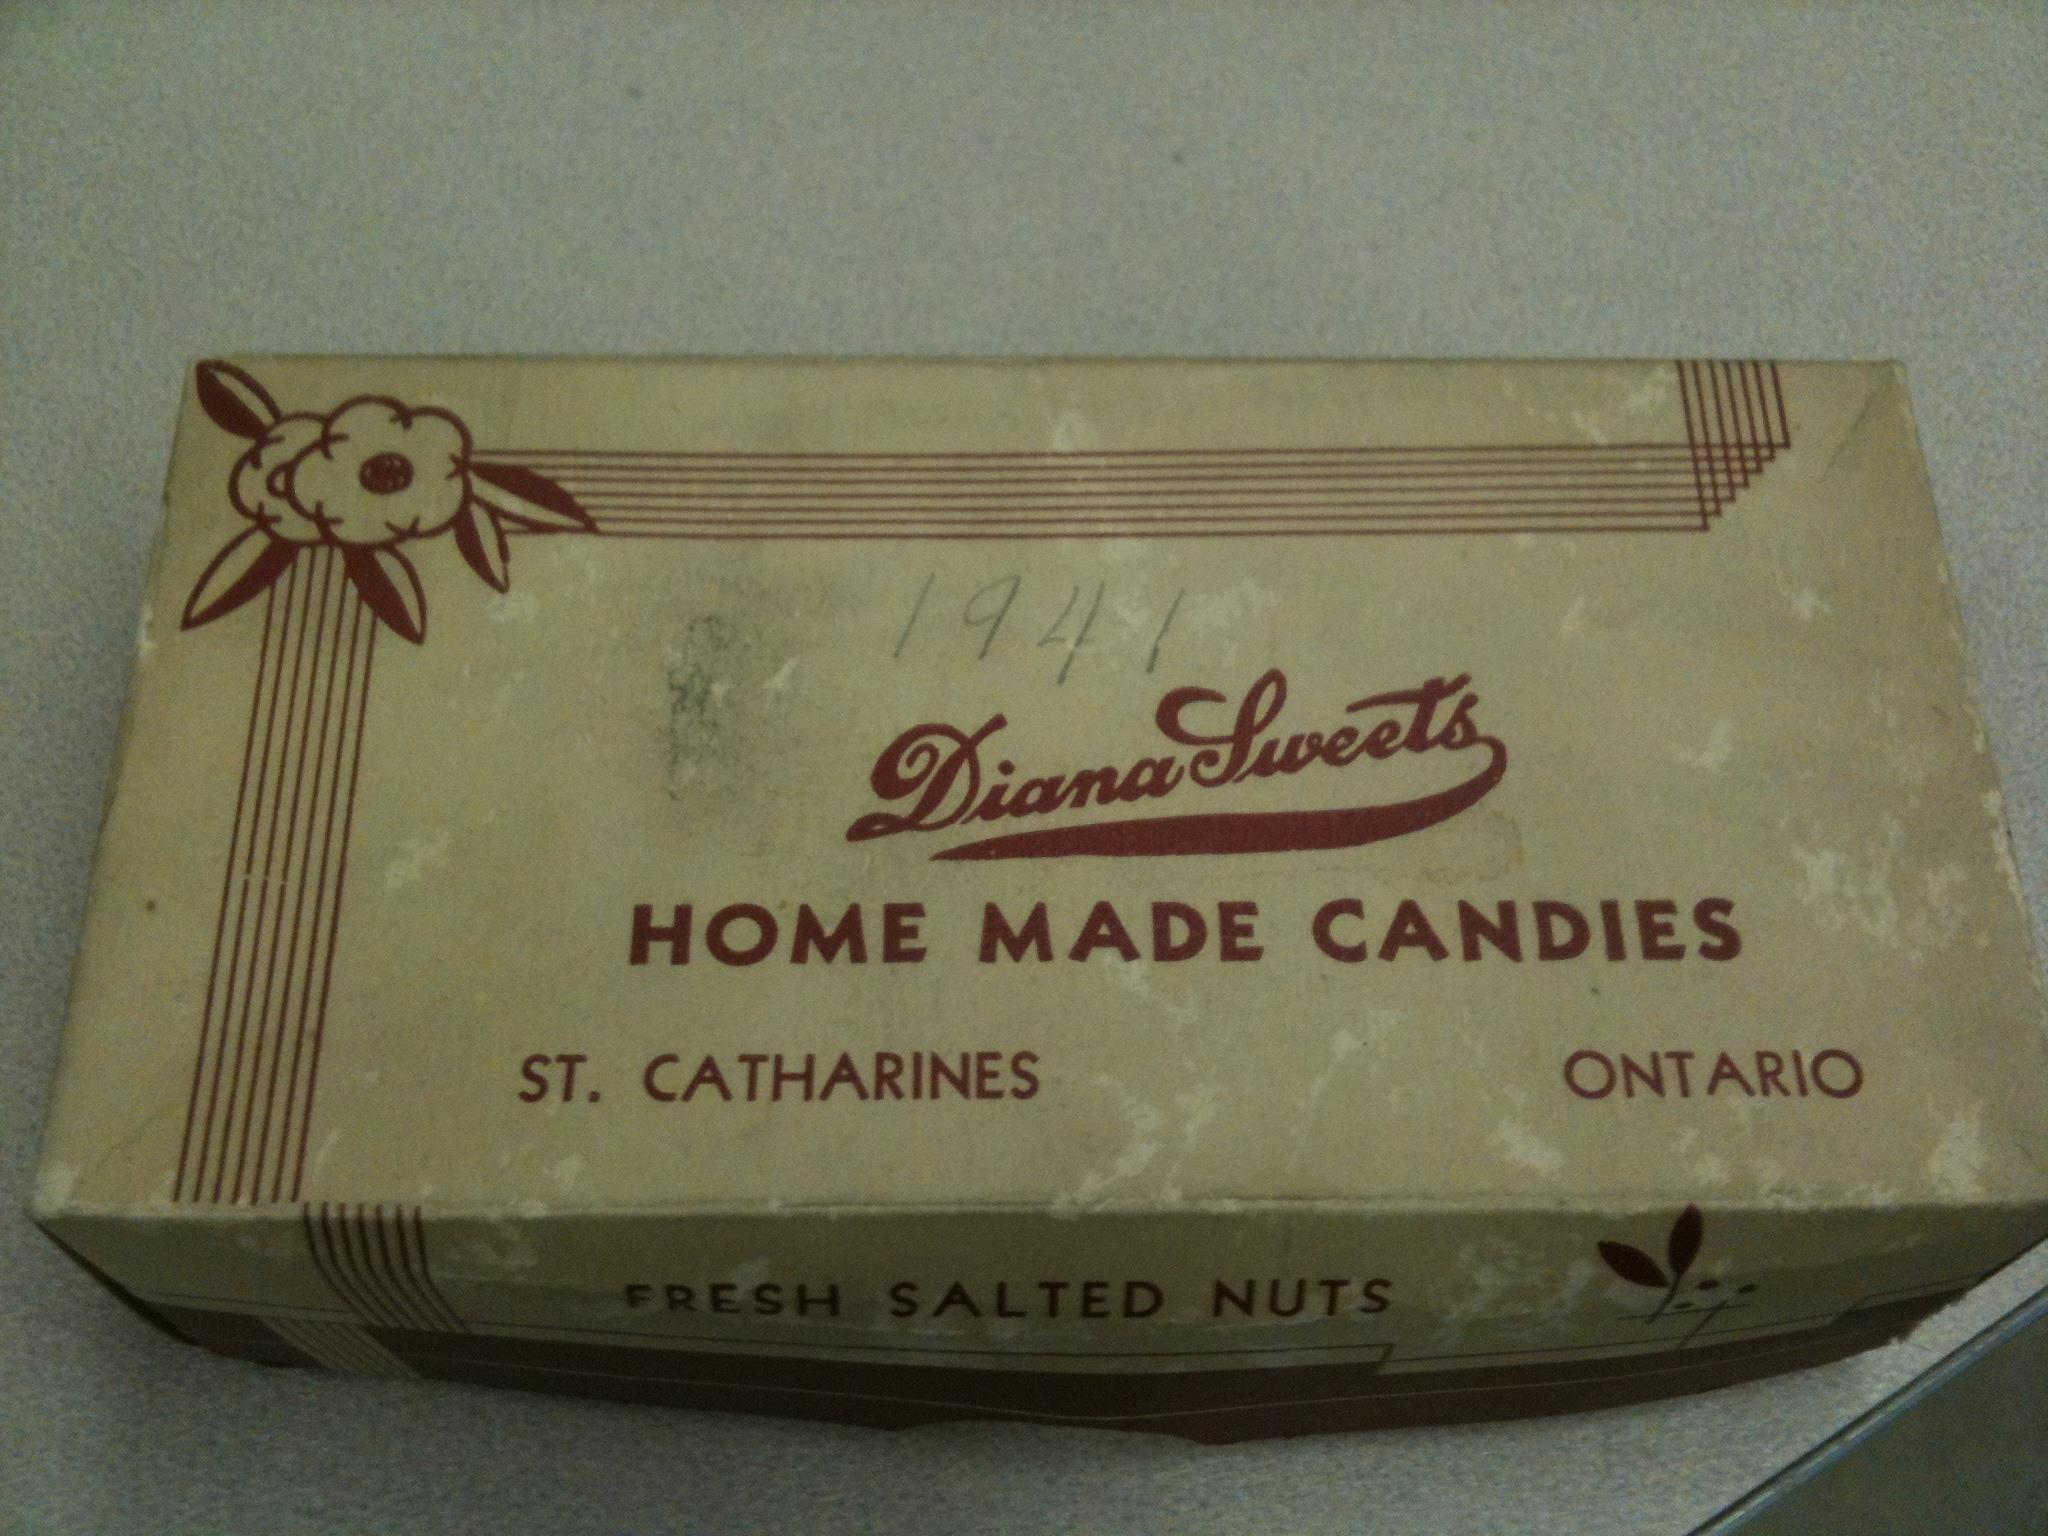 Diana Sweets Candy Box